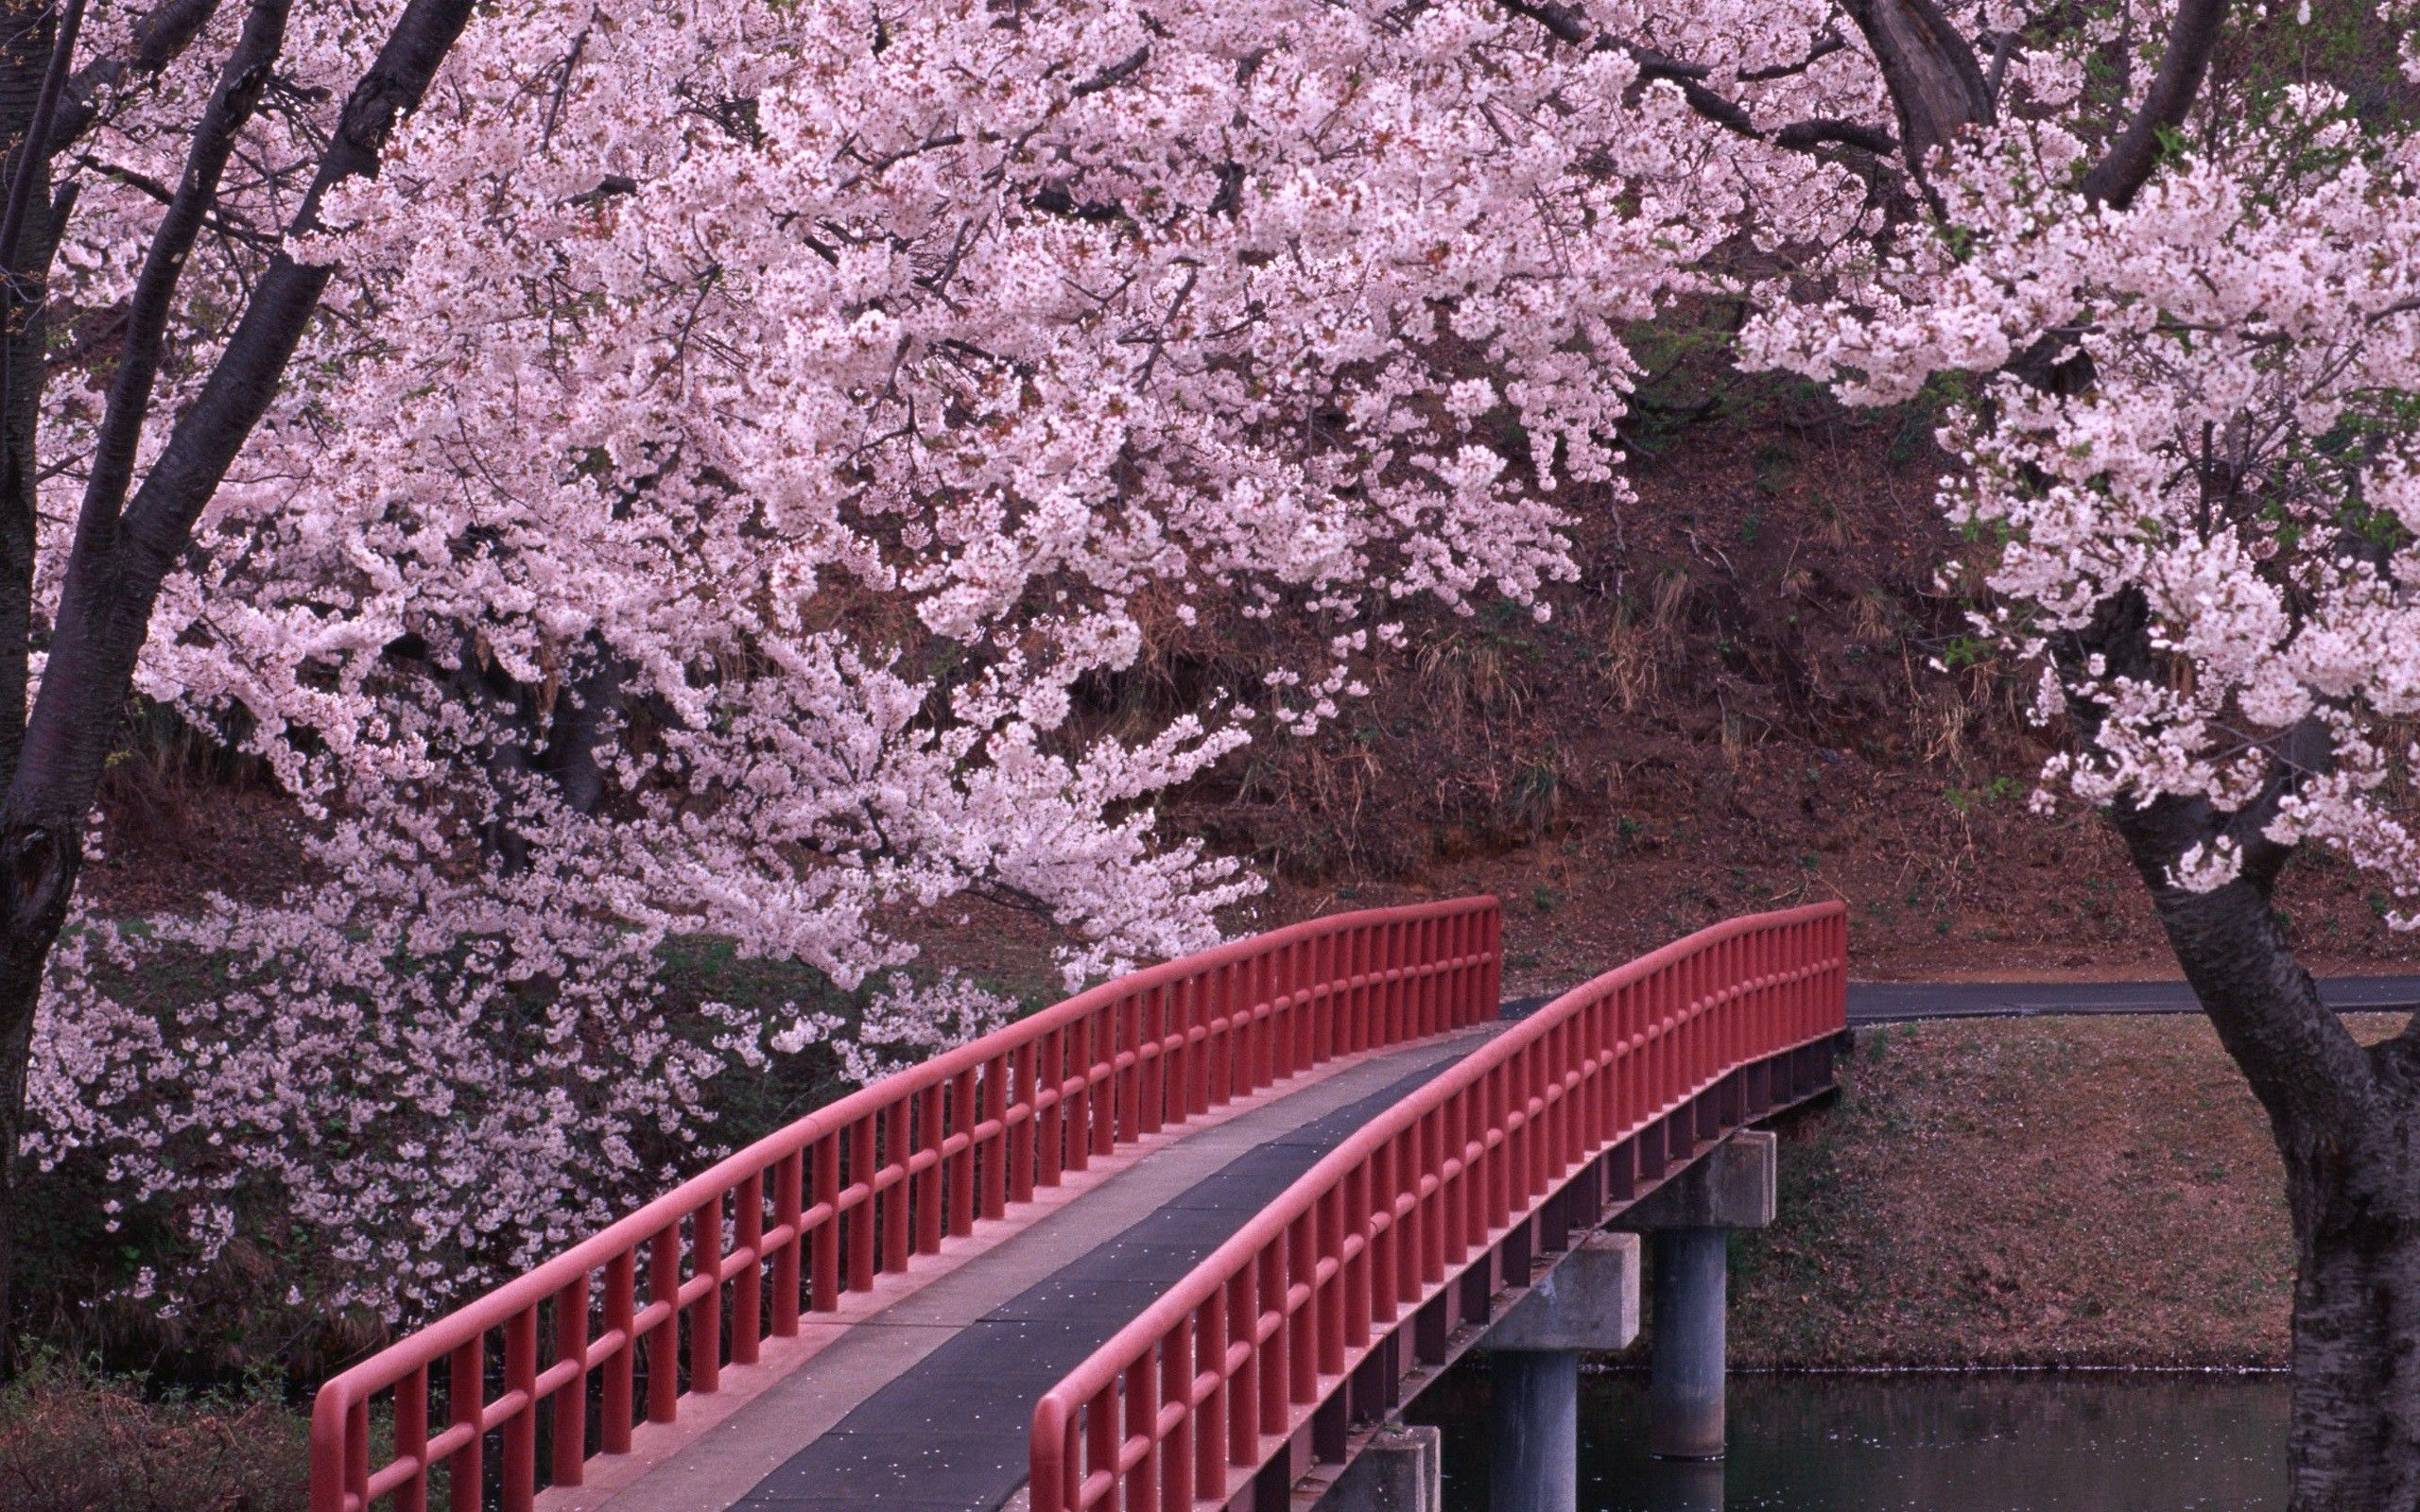 Landscapes Cherry Blossoms Flowers Bridges Fresh New HD Wallpaper